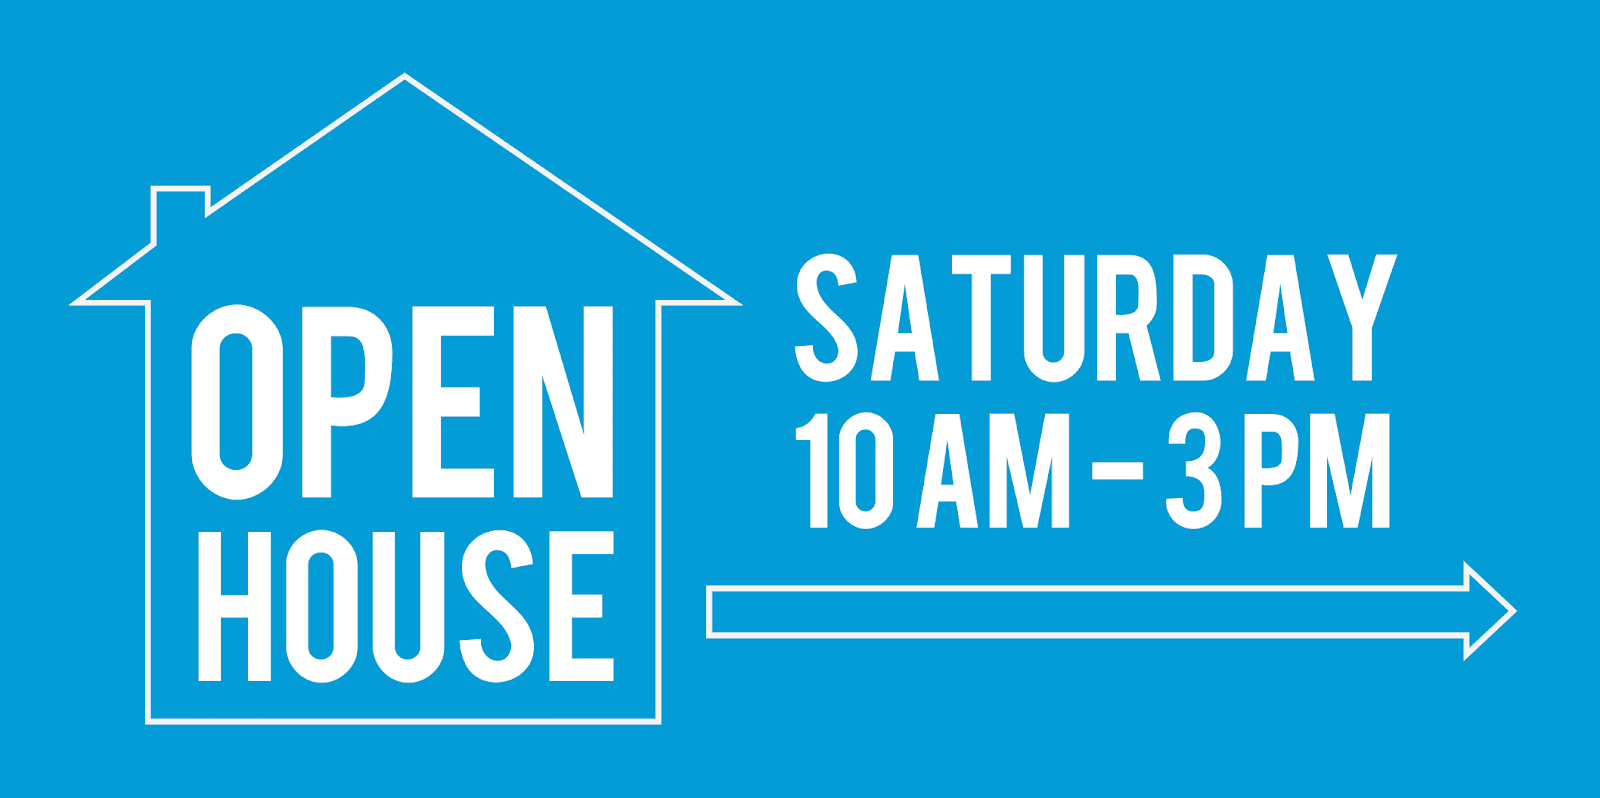 Temporary Open House Sign